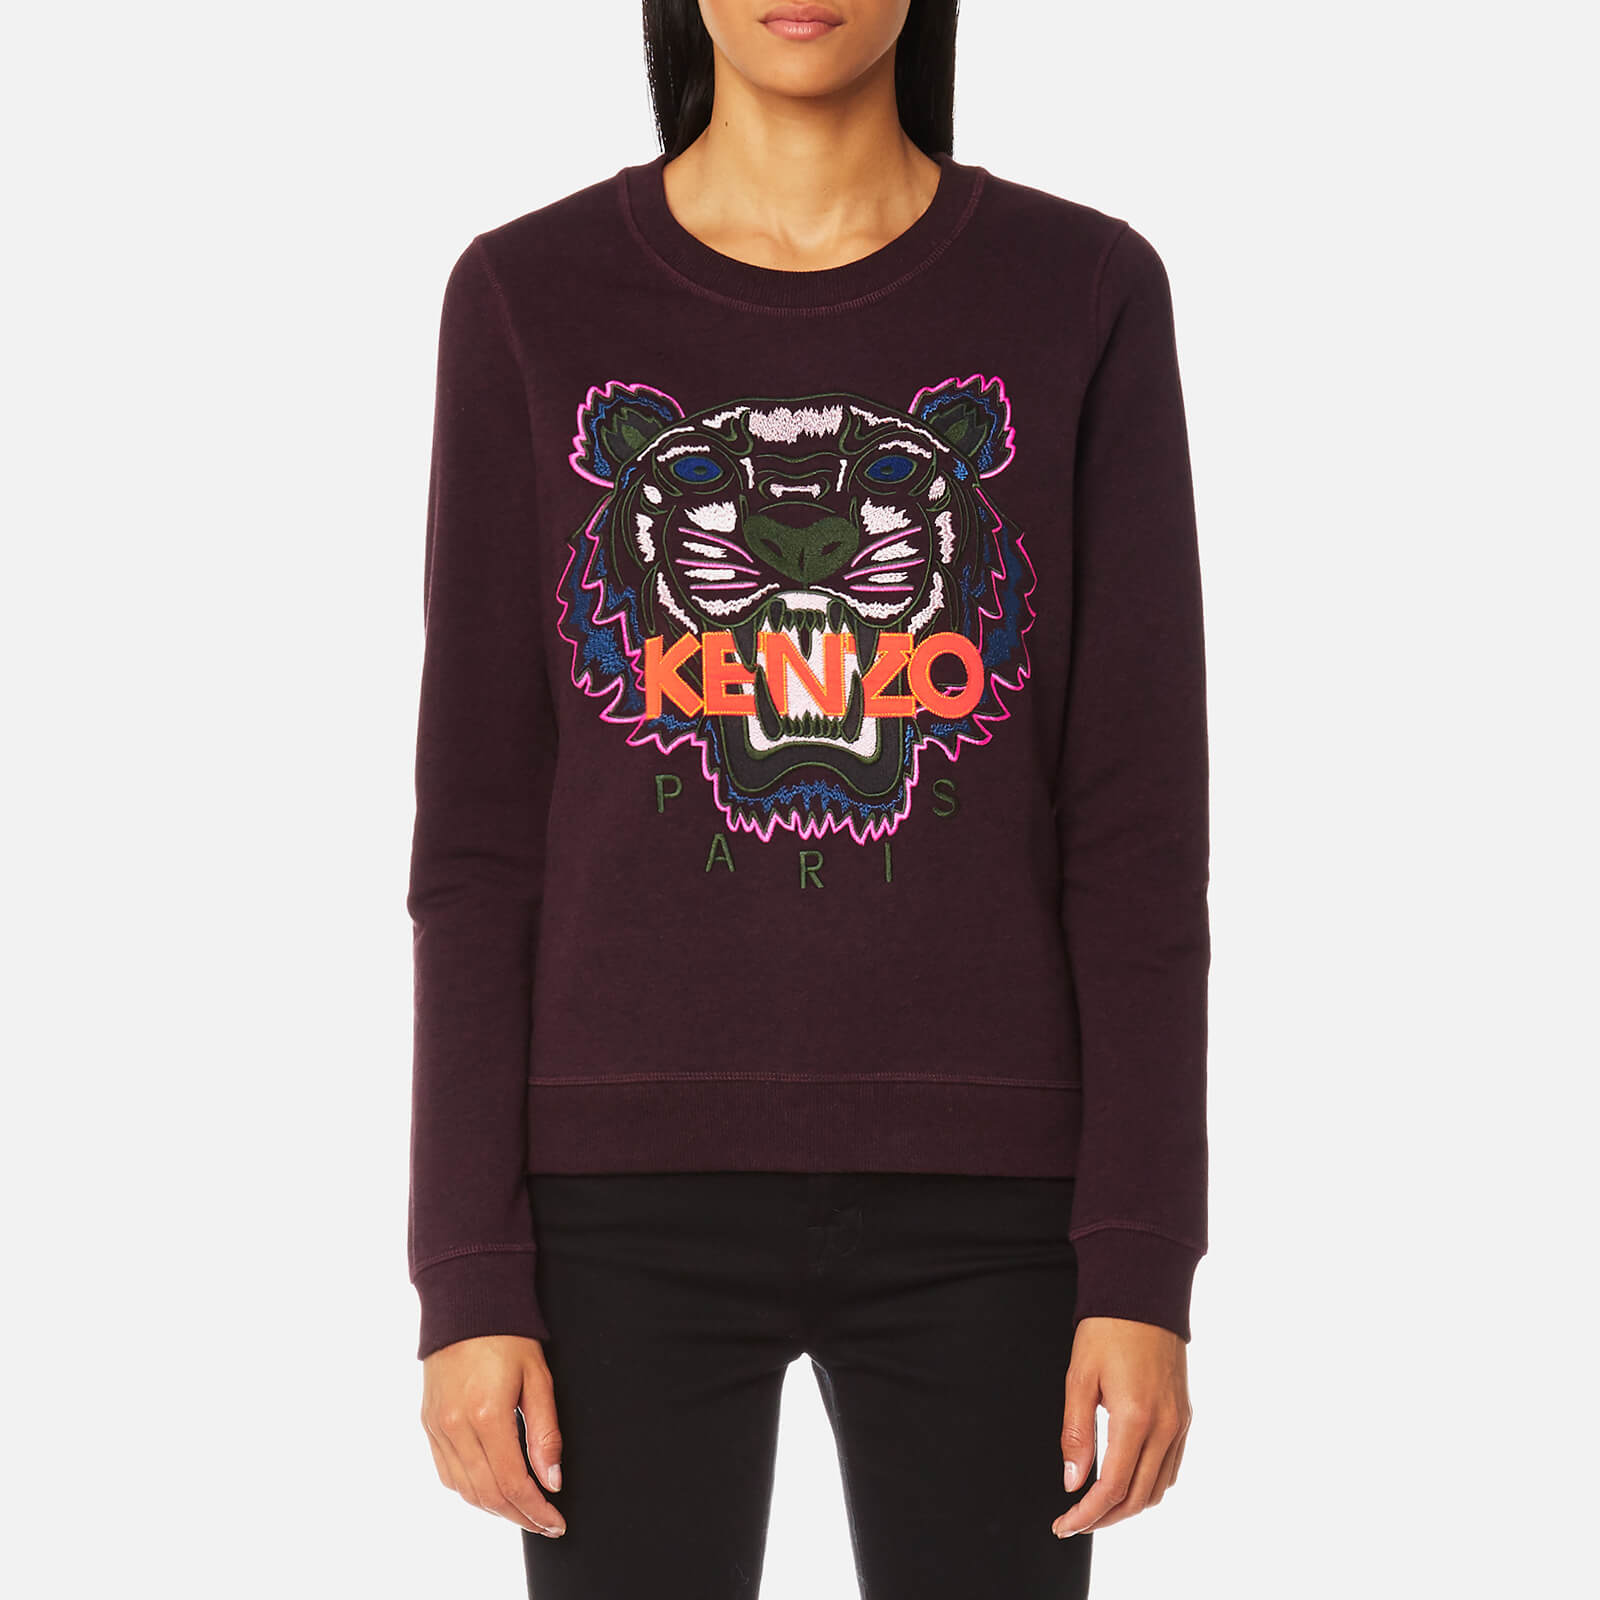 132d90d0 KENZO Women's Classic Tiger Sweatshirt - Prune - Free UK Delivery over £50